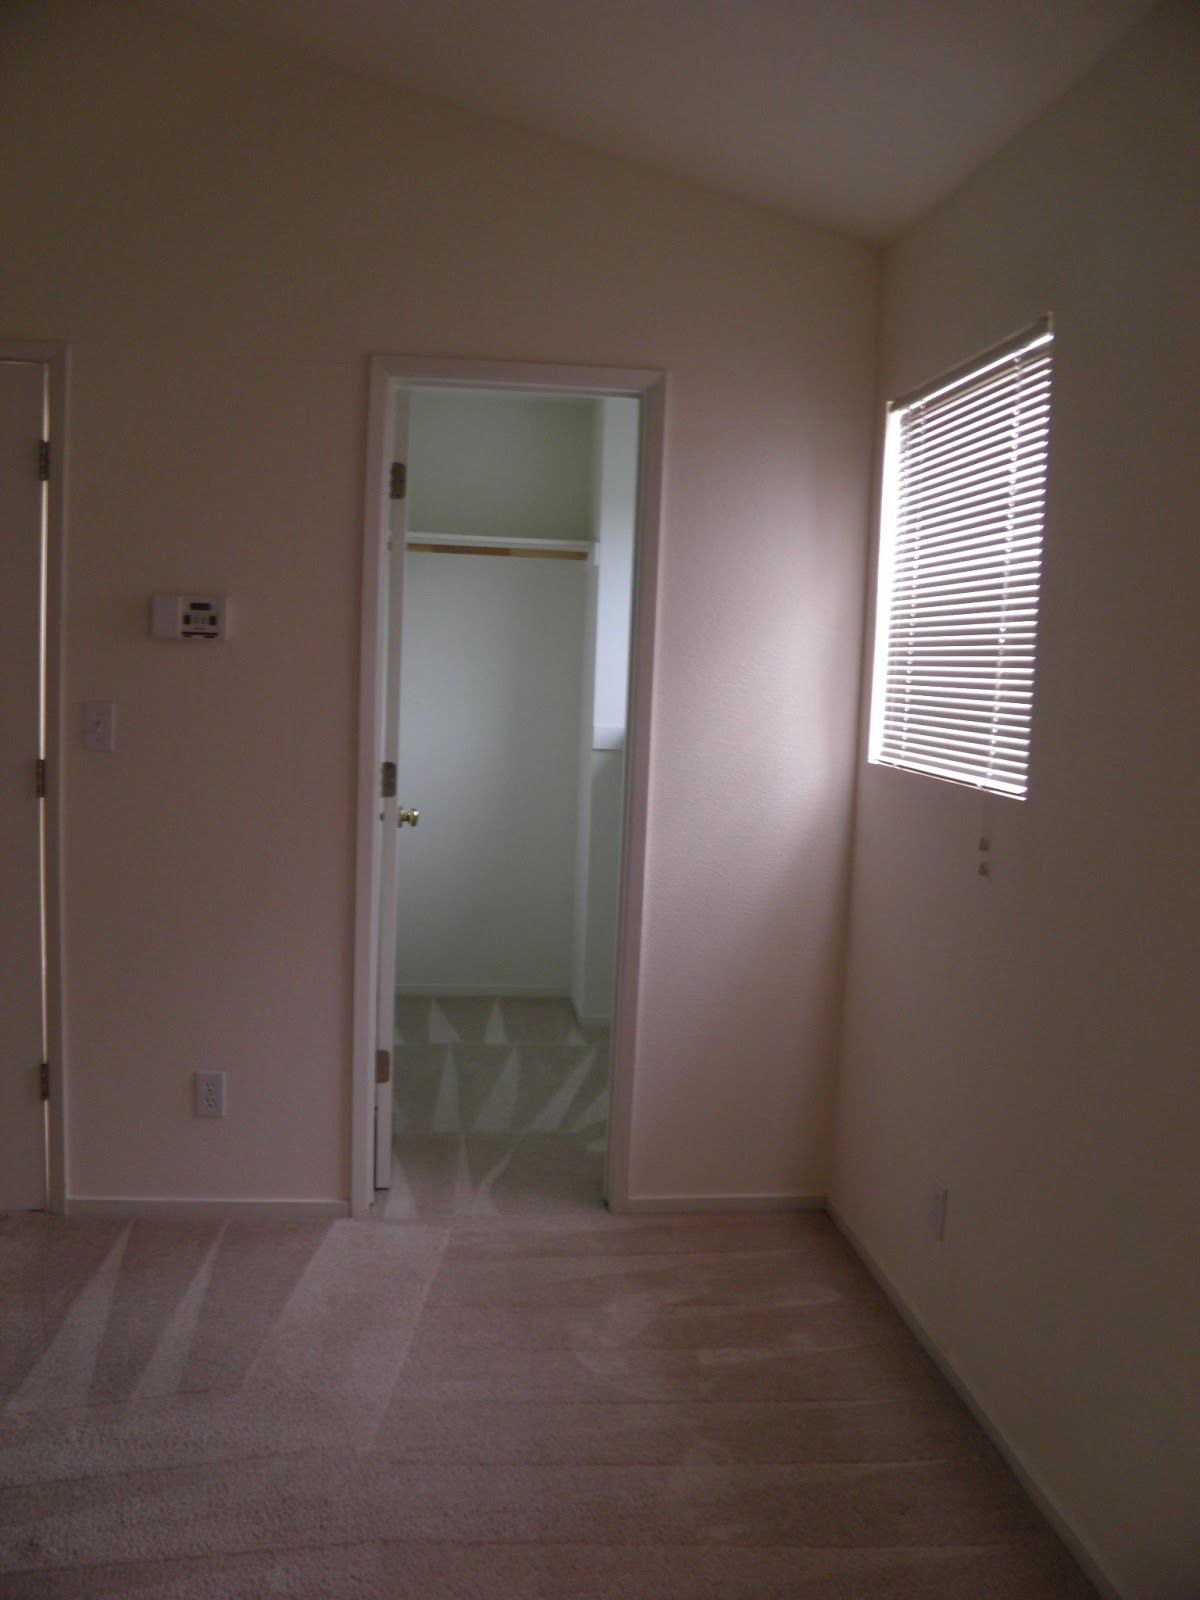 Weekend Tweaks Tweaked Master Bedroom Walk In Closet Part 2